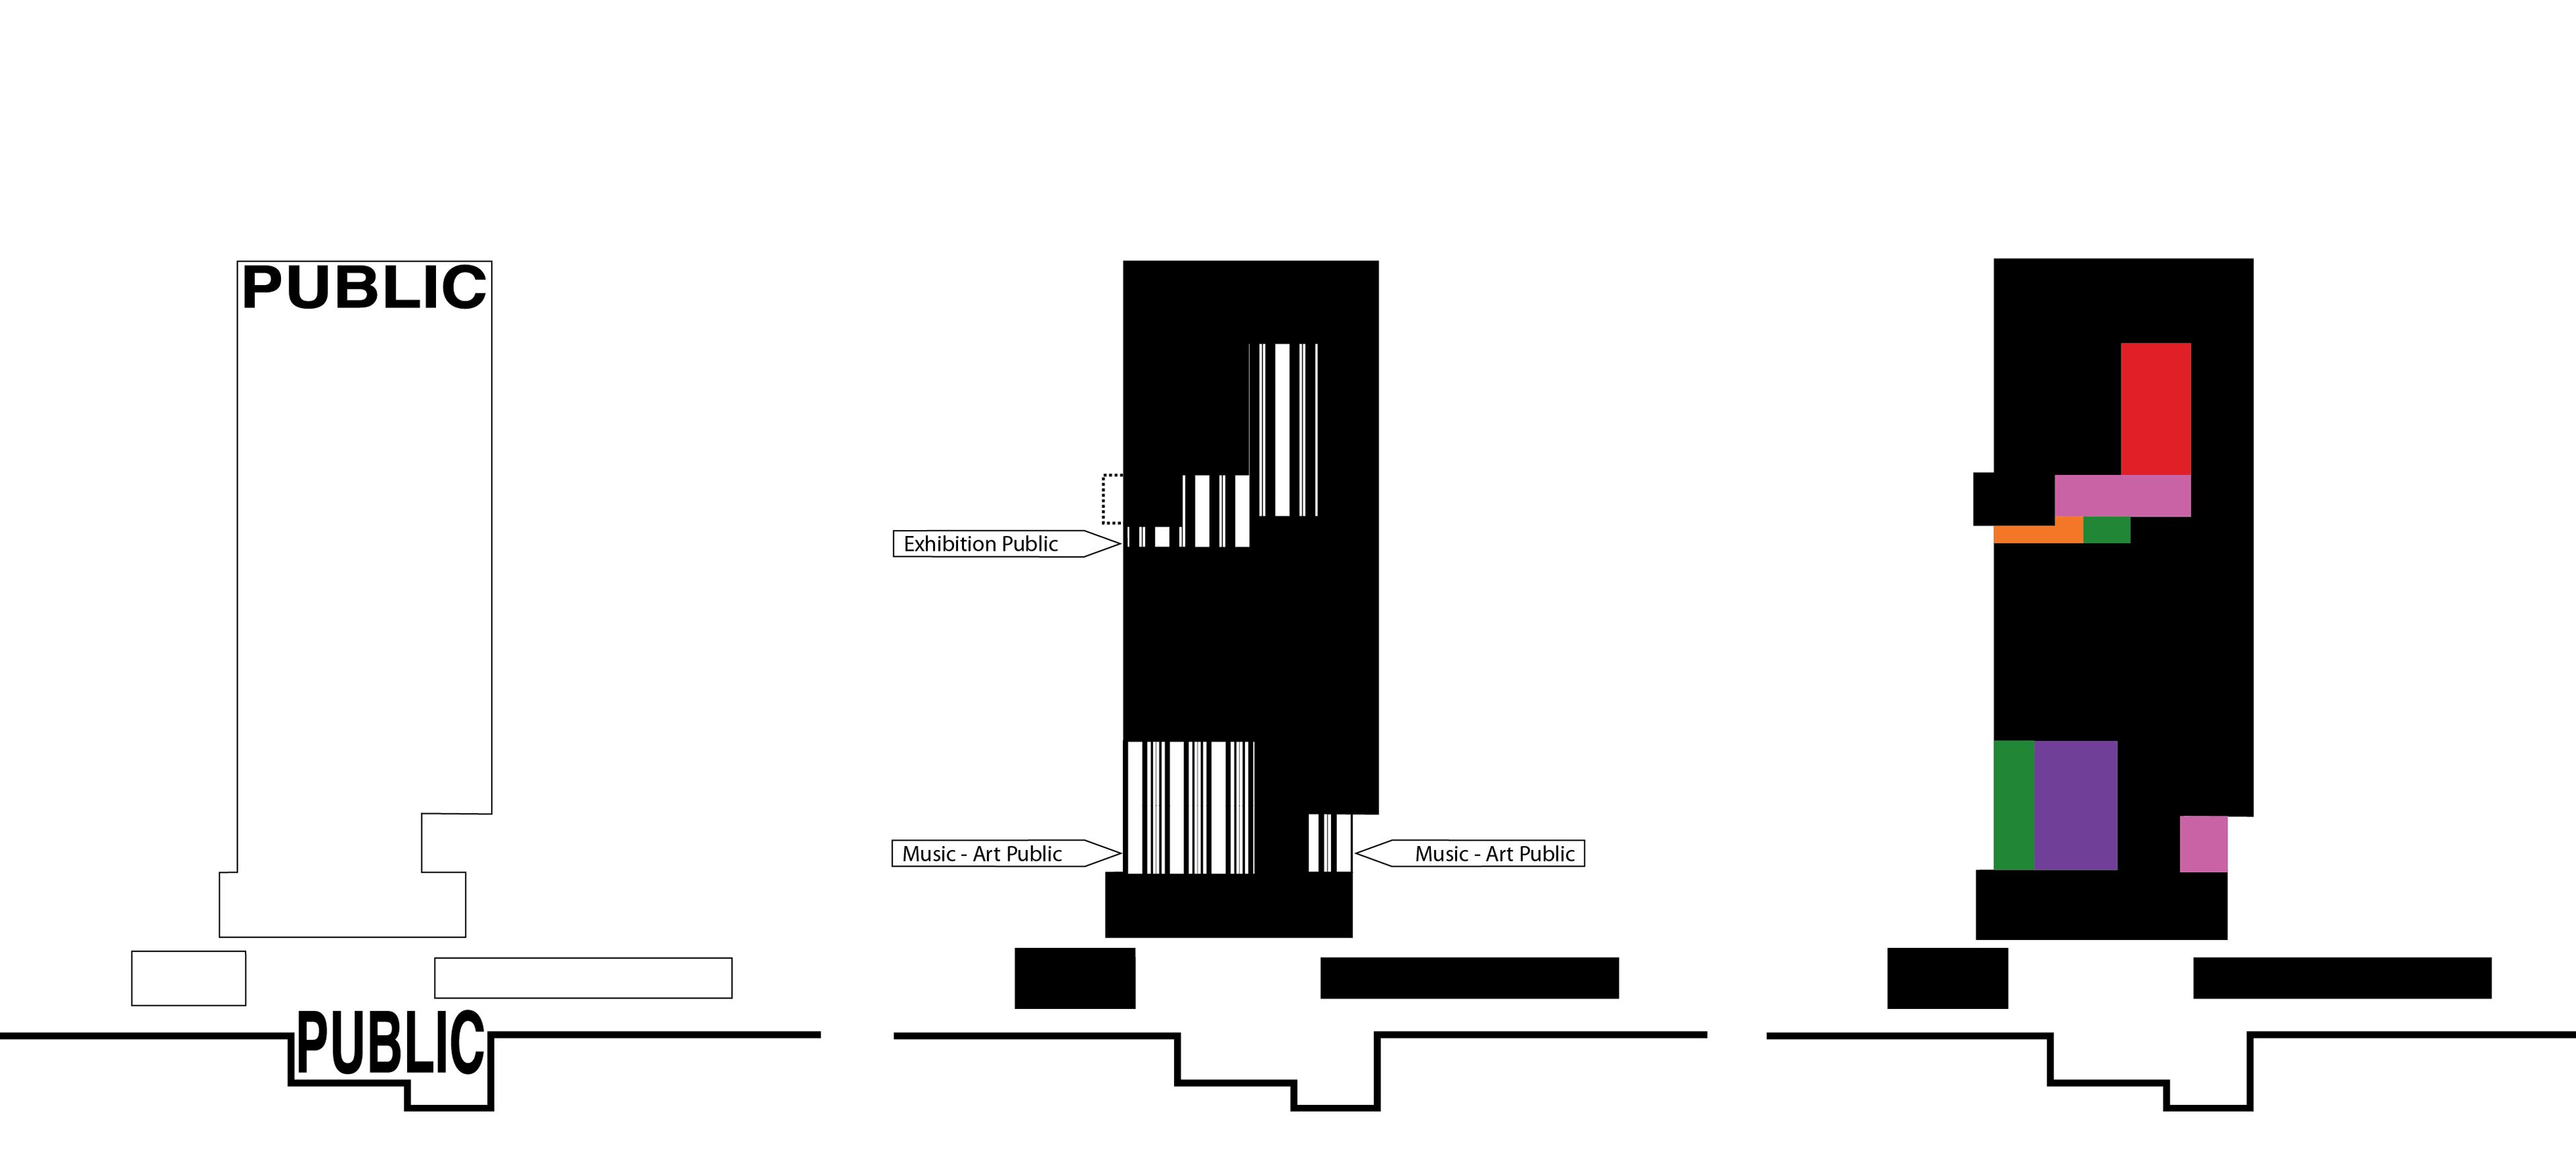 Shenzhen Stock Exchange Diagram 2003 Ford Escape Exhaust System Personal Survey Done 2012 Sections Architecture 건축 패널